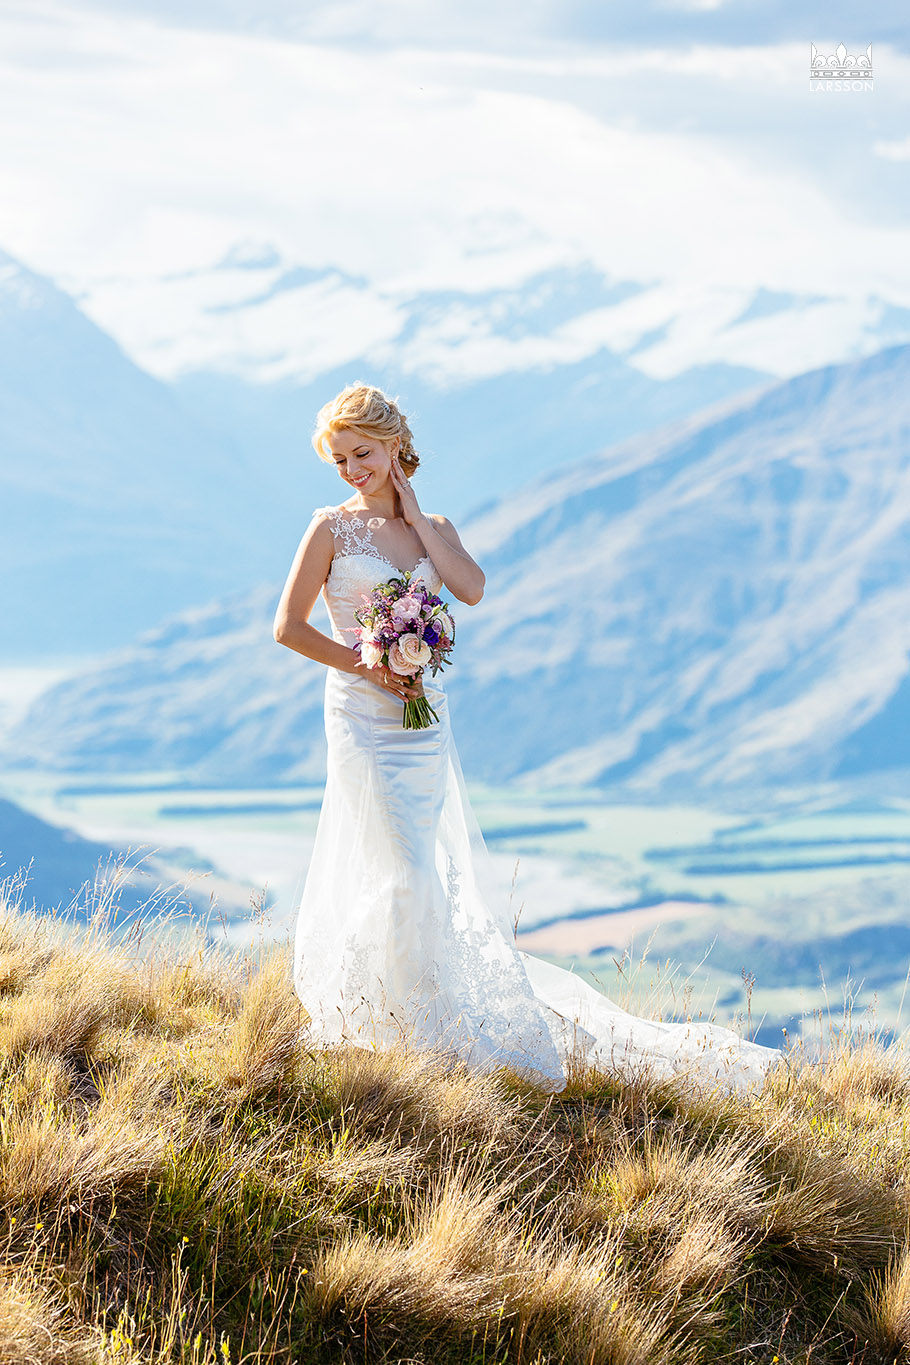 Celebrity wedding Masiela Lusha & Ramzi Habibi in Queenstown